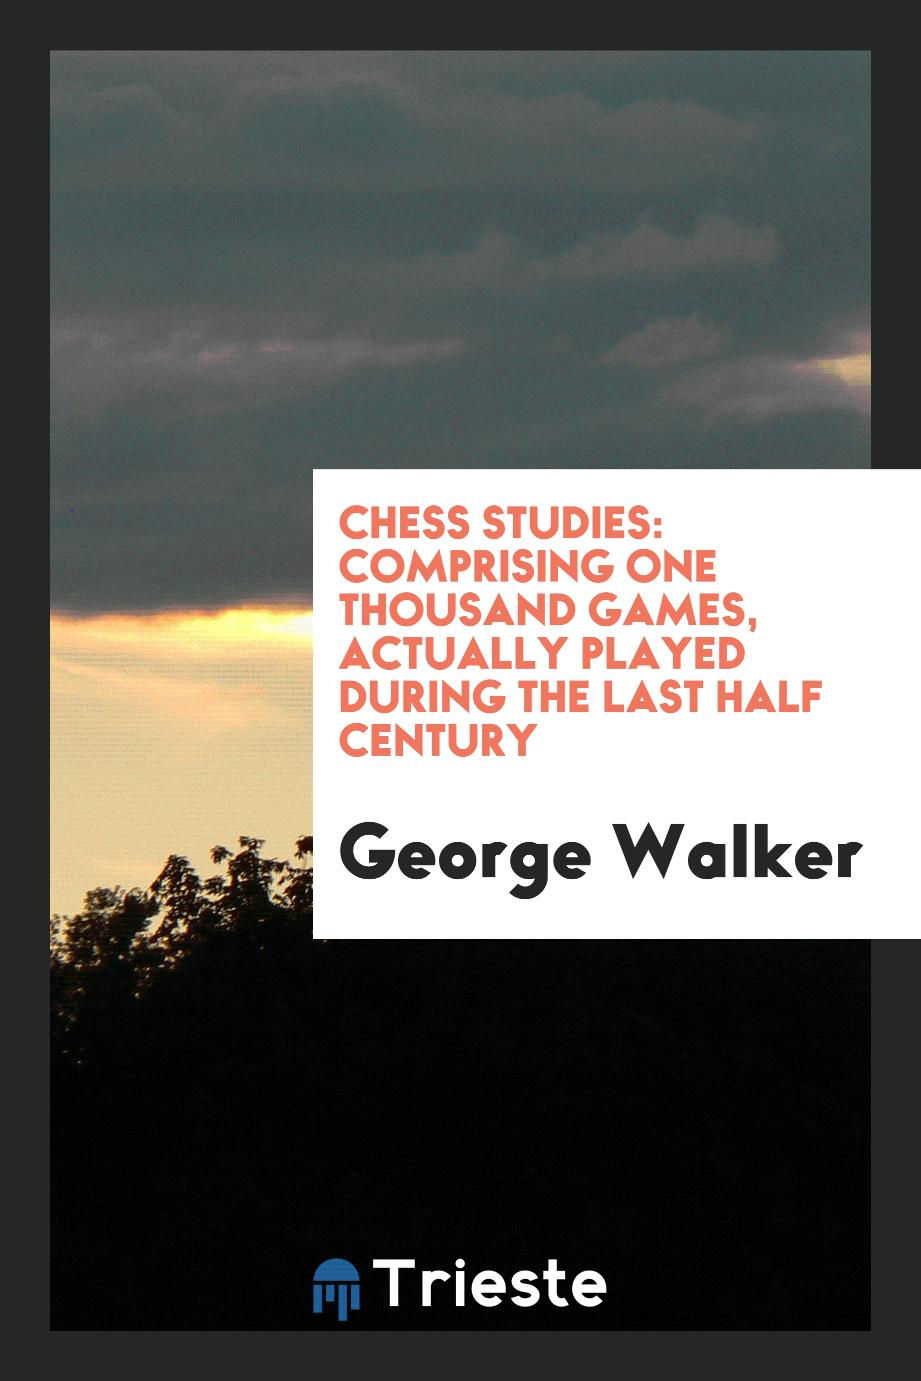 Chess Studies: Comprising One Thousand Games, Actually Played During the Last Half Century